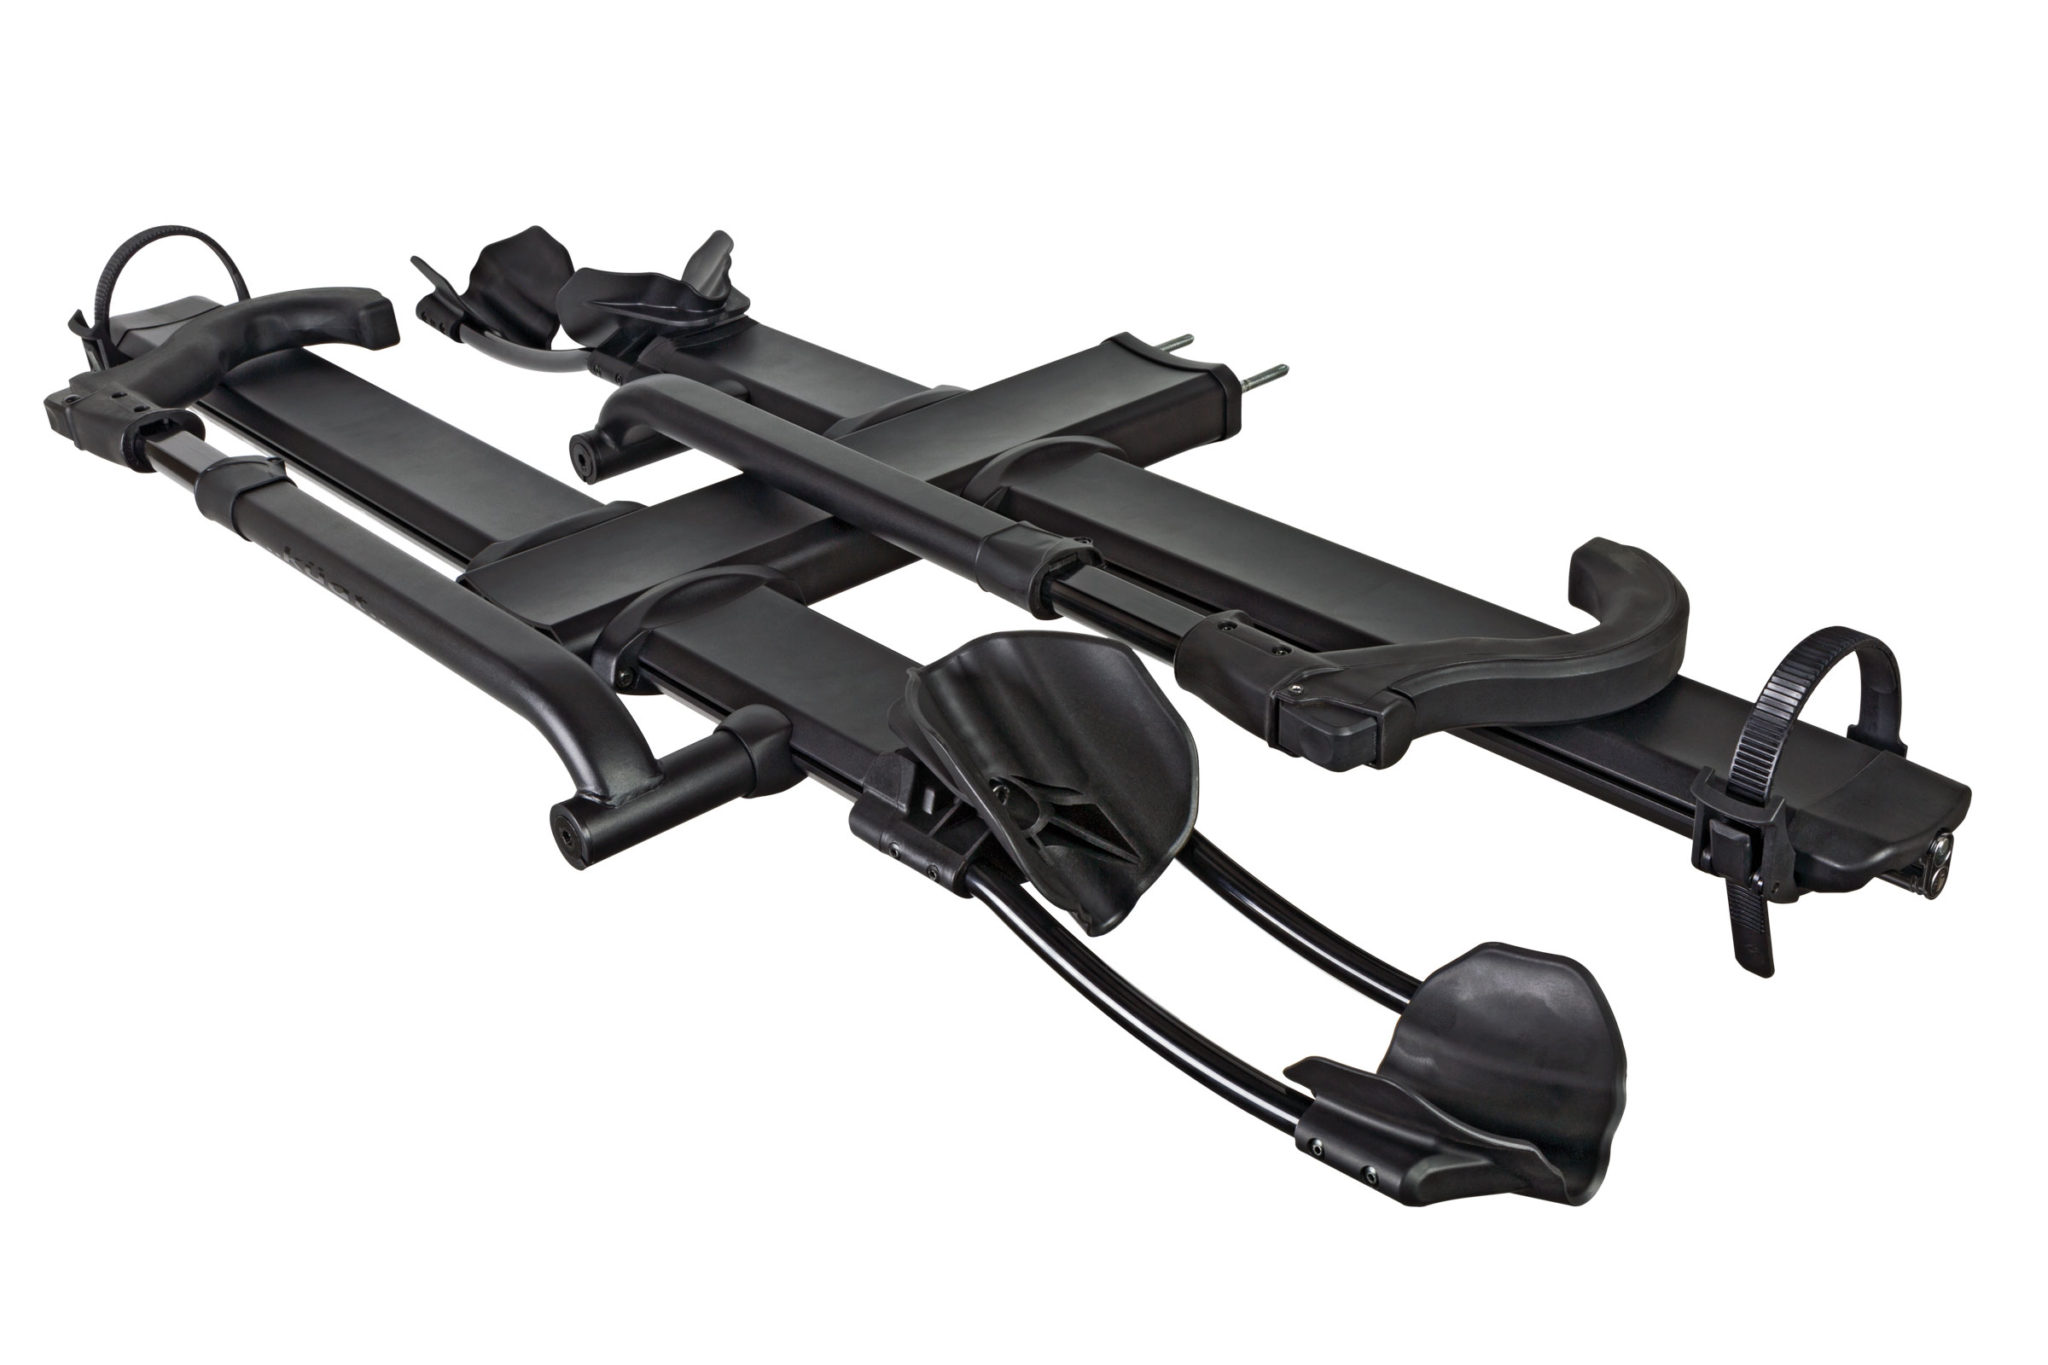 nv kuat rack reviews alpha bike uk racks